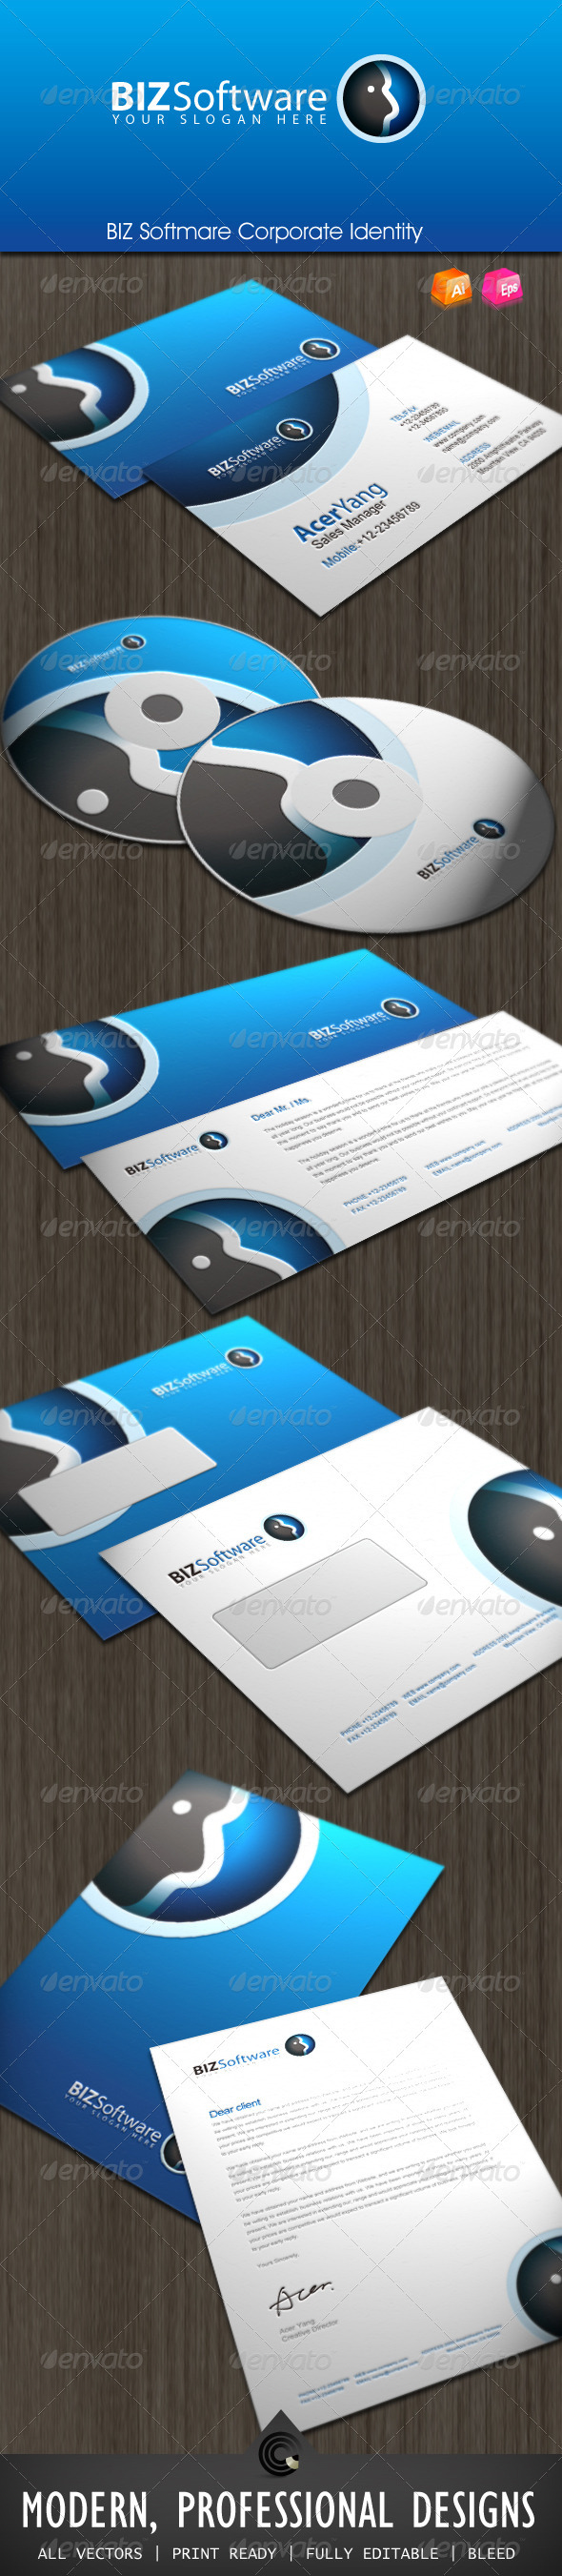 BIZ Softmare Corporate Identity - Stationery Print Templates